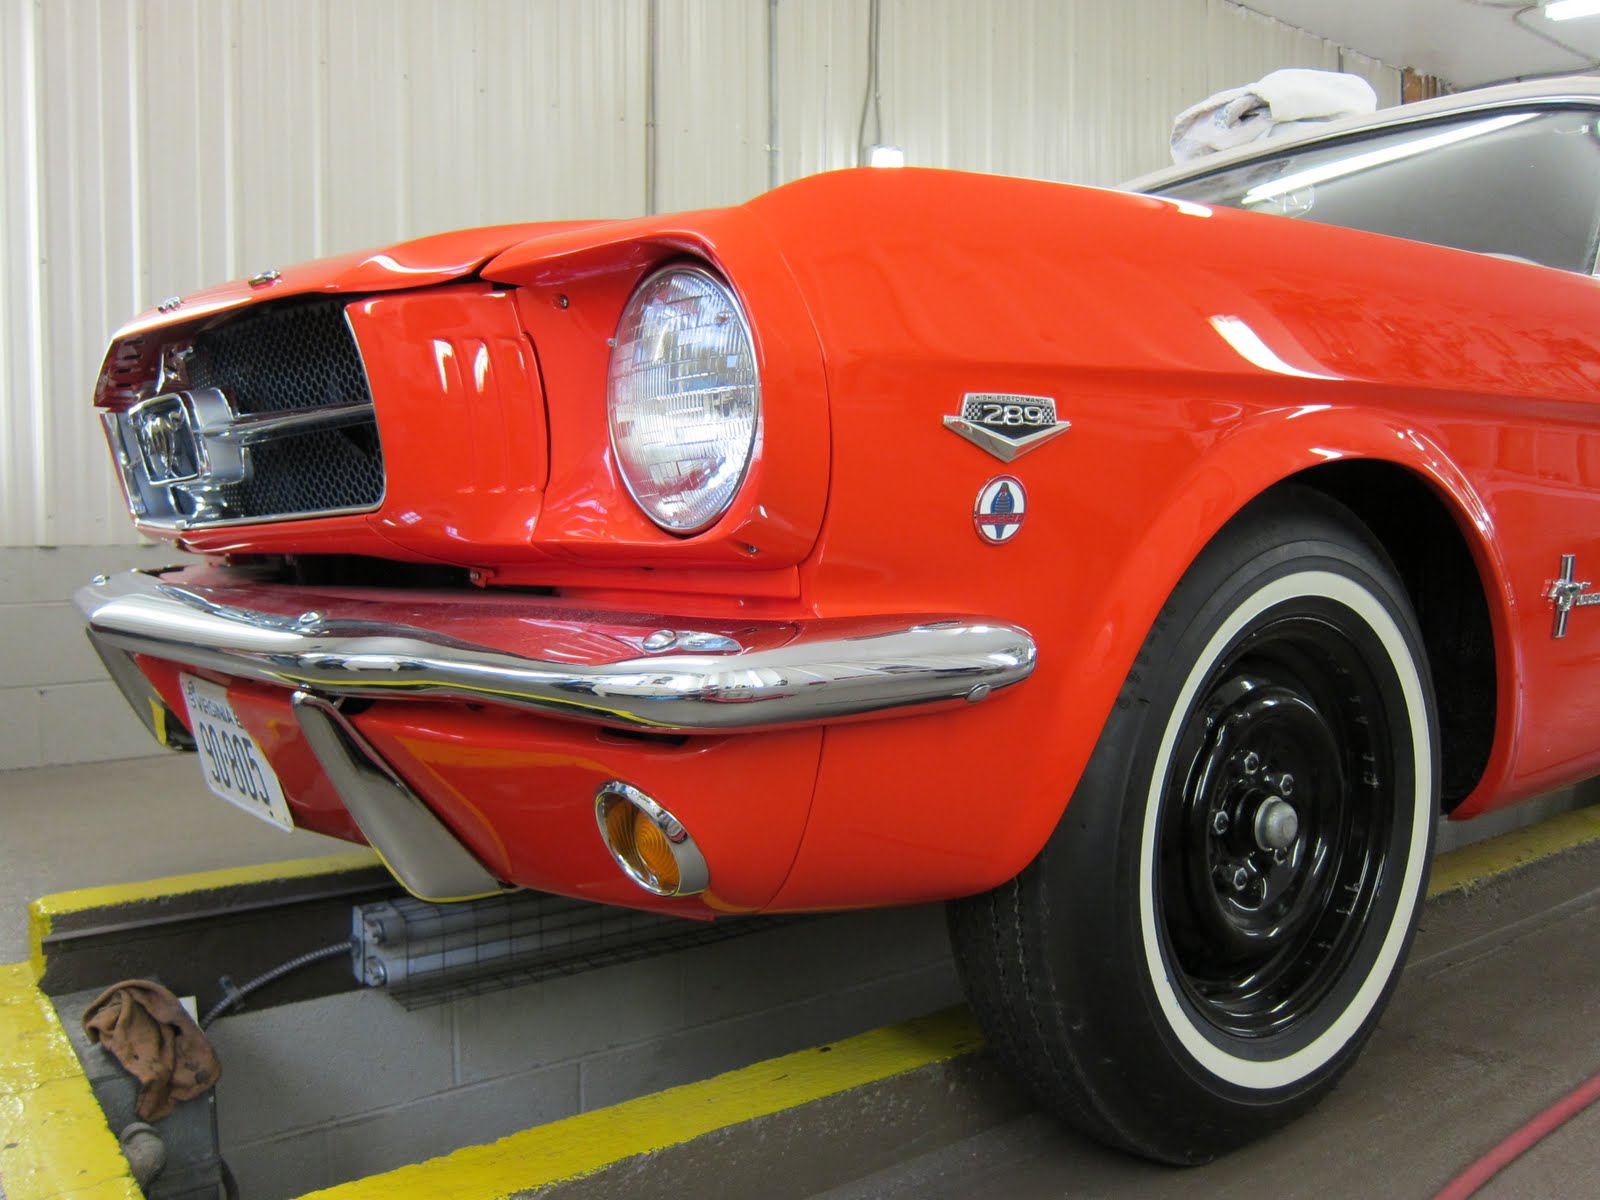 1965 Mustang High Performance Convertible Restoration Update